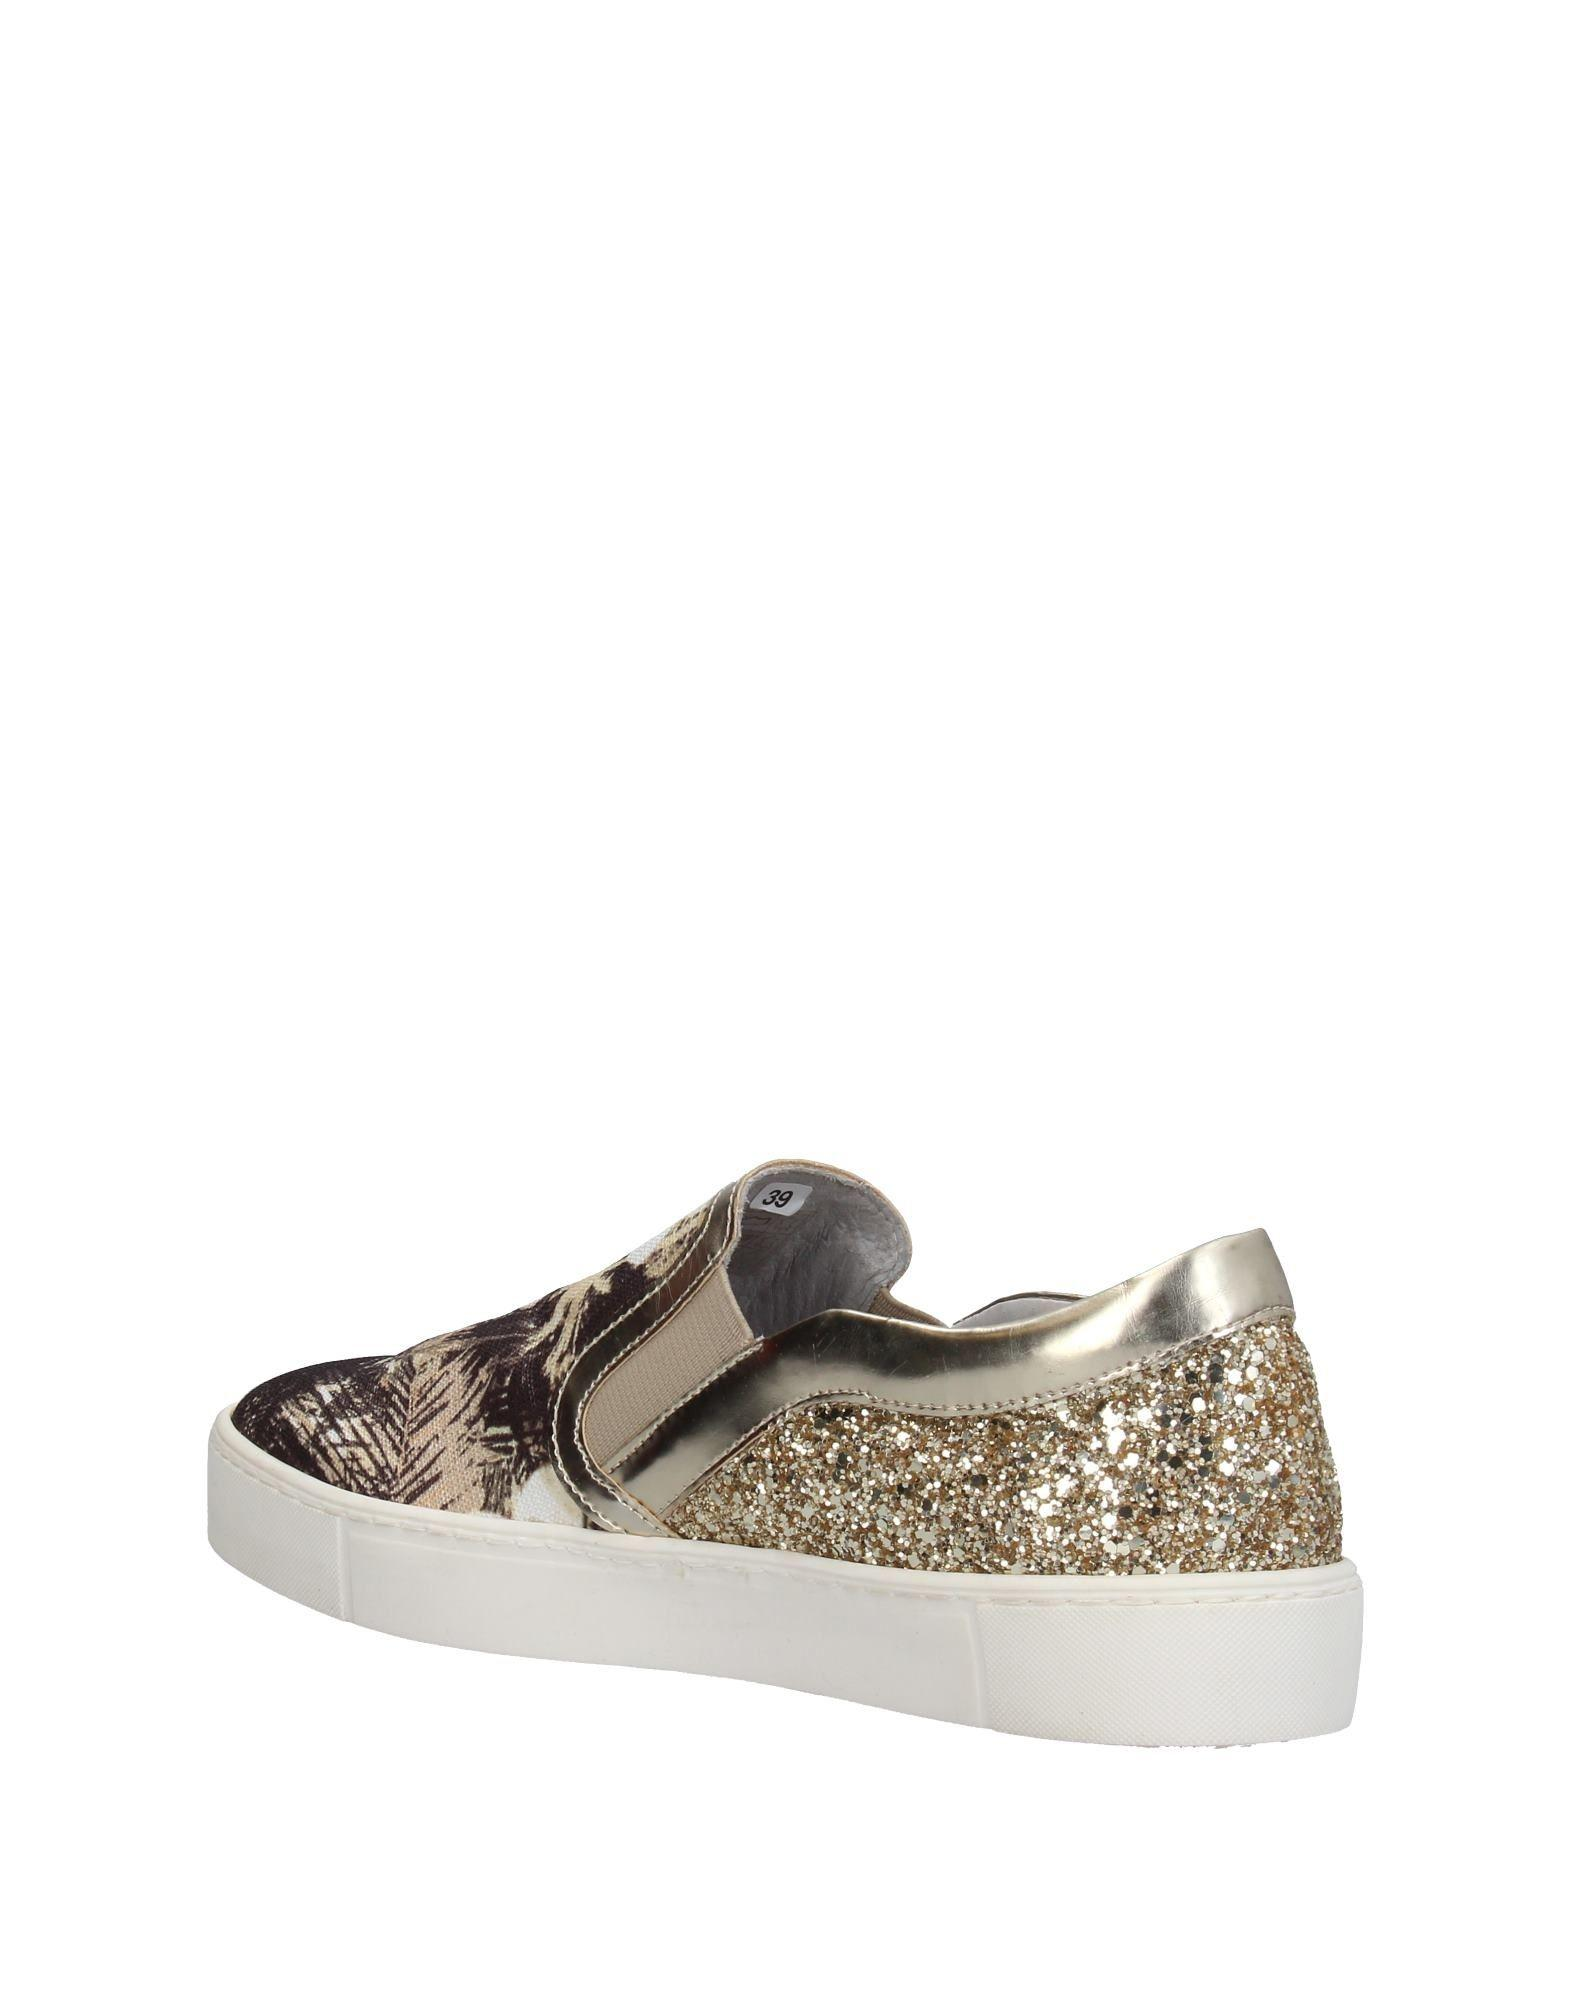 Divine Follie Leather Low-tops & Sneakers in Ivory (White)